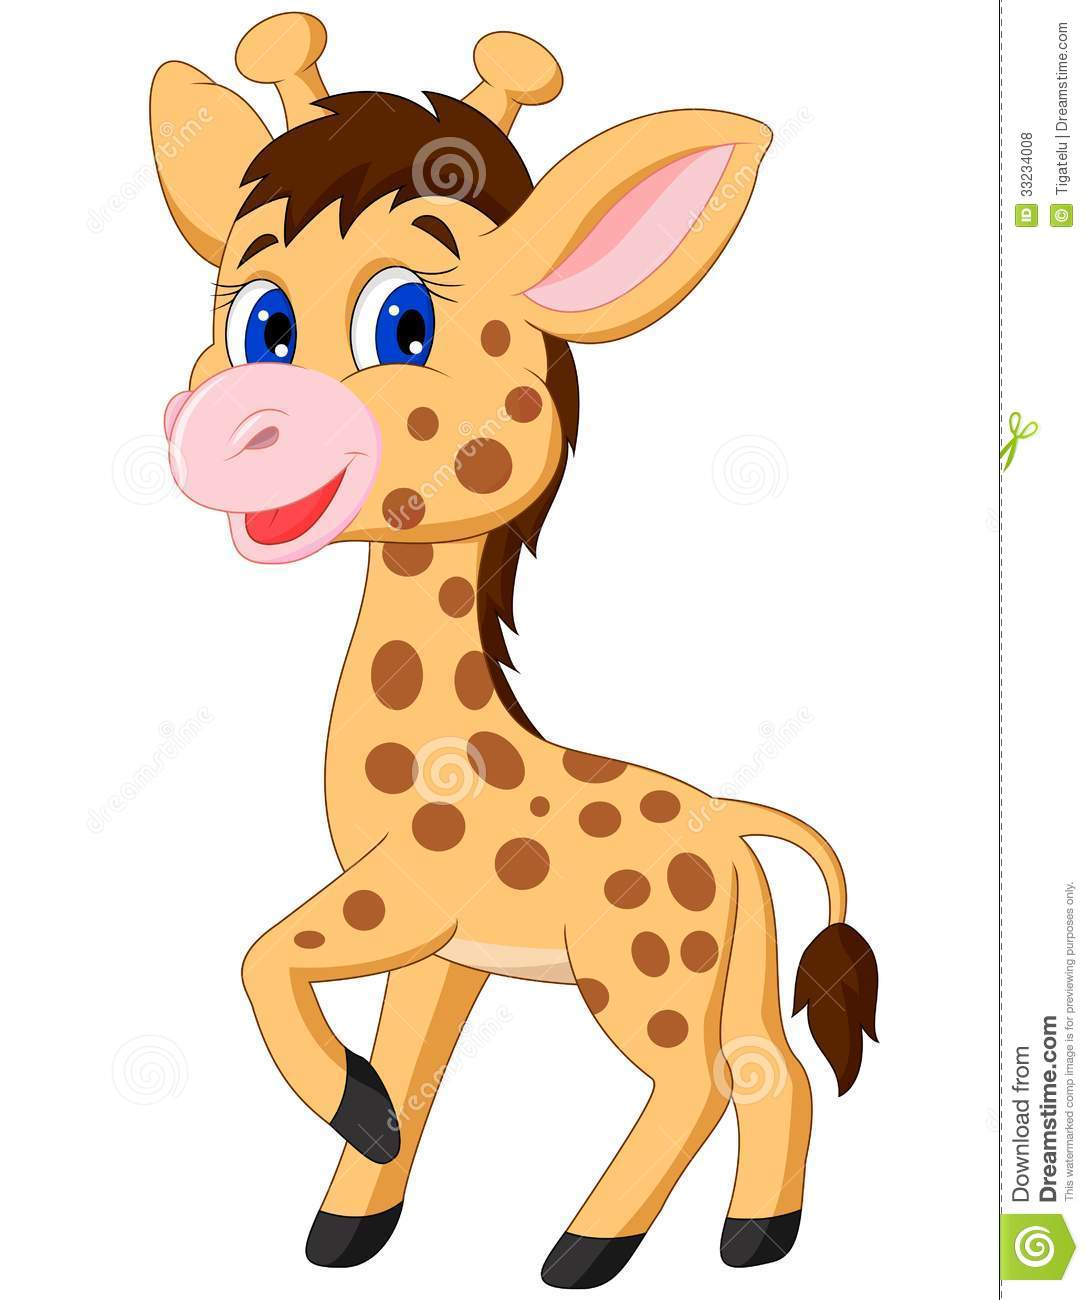 Cute Baby Giraffe Cute Baby Giraffe Cartoon Clip Art Images